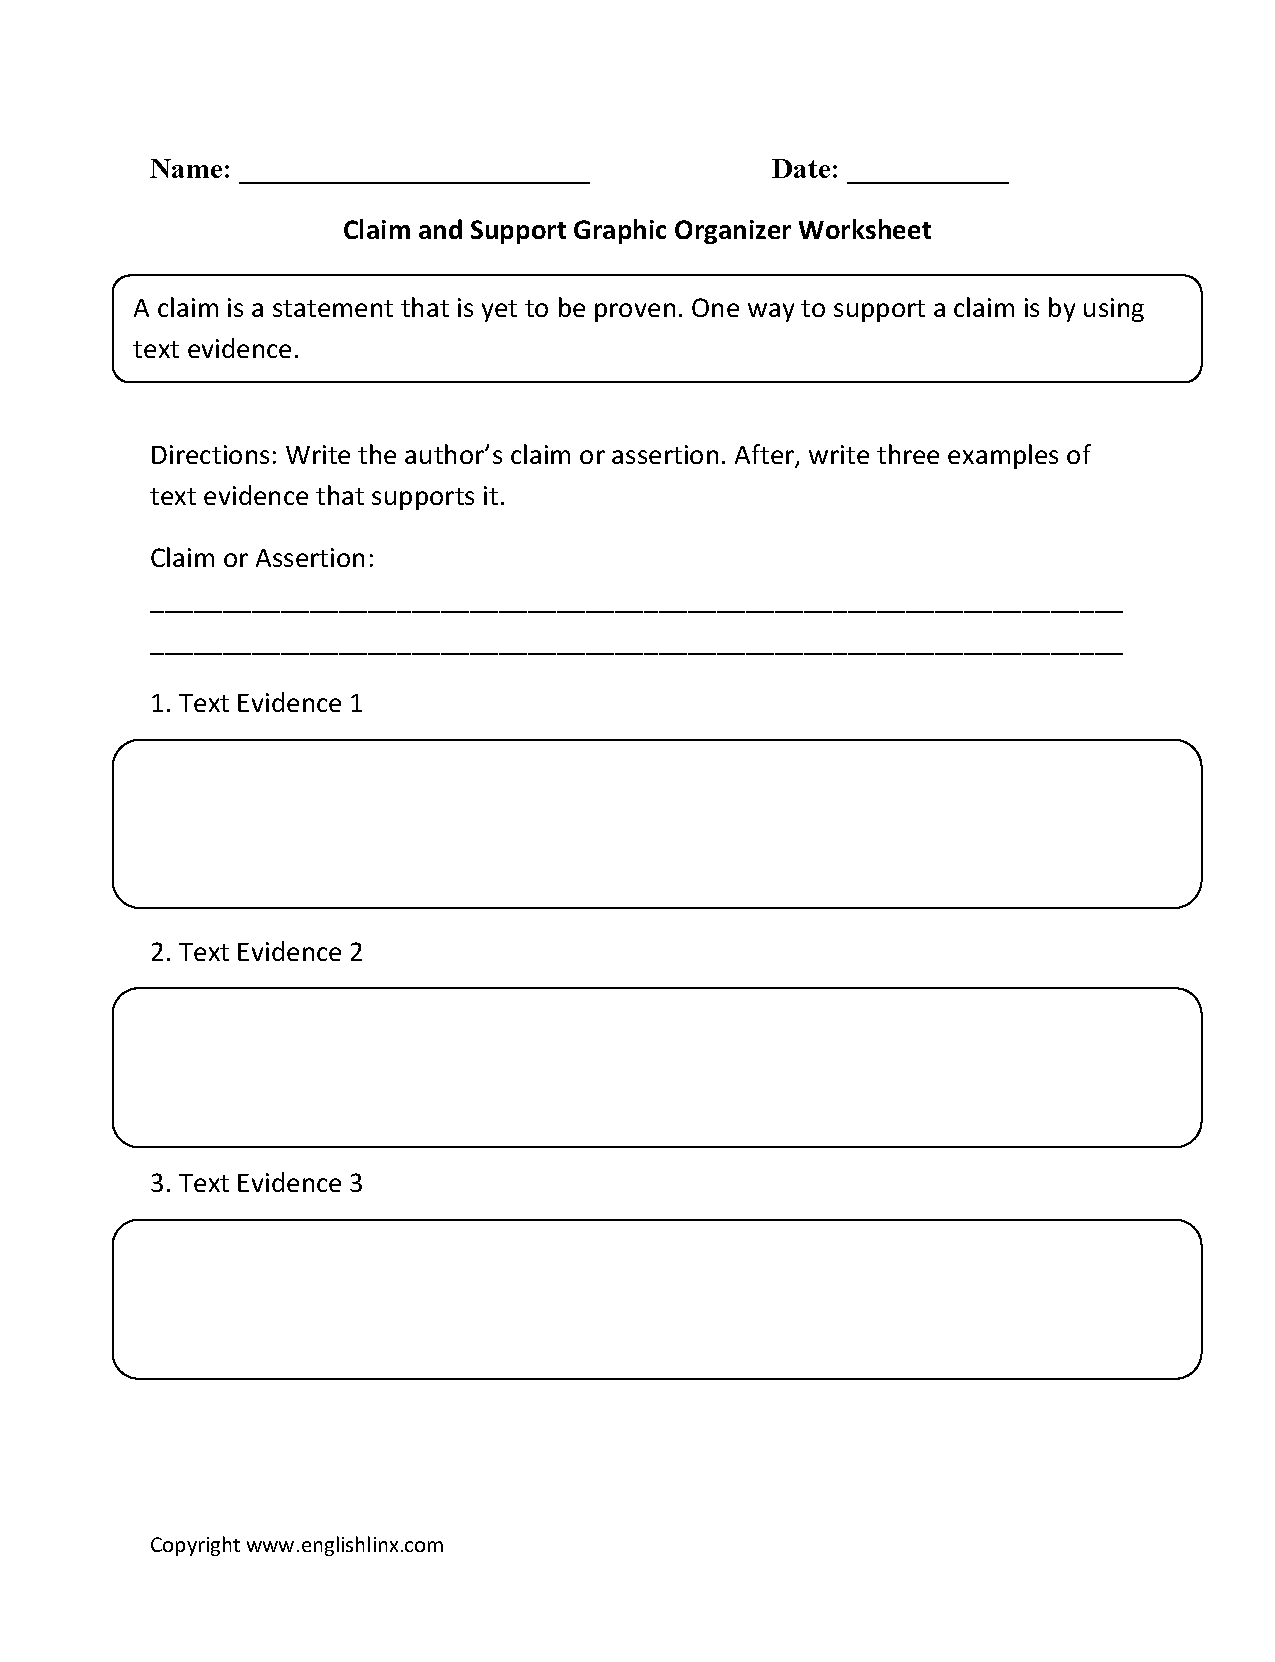 Claim and Support Graphic Organizers Worksheets